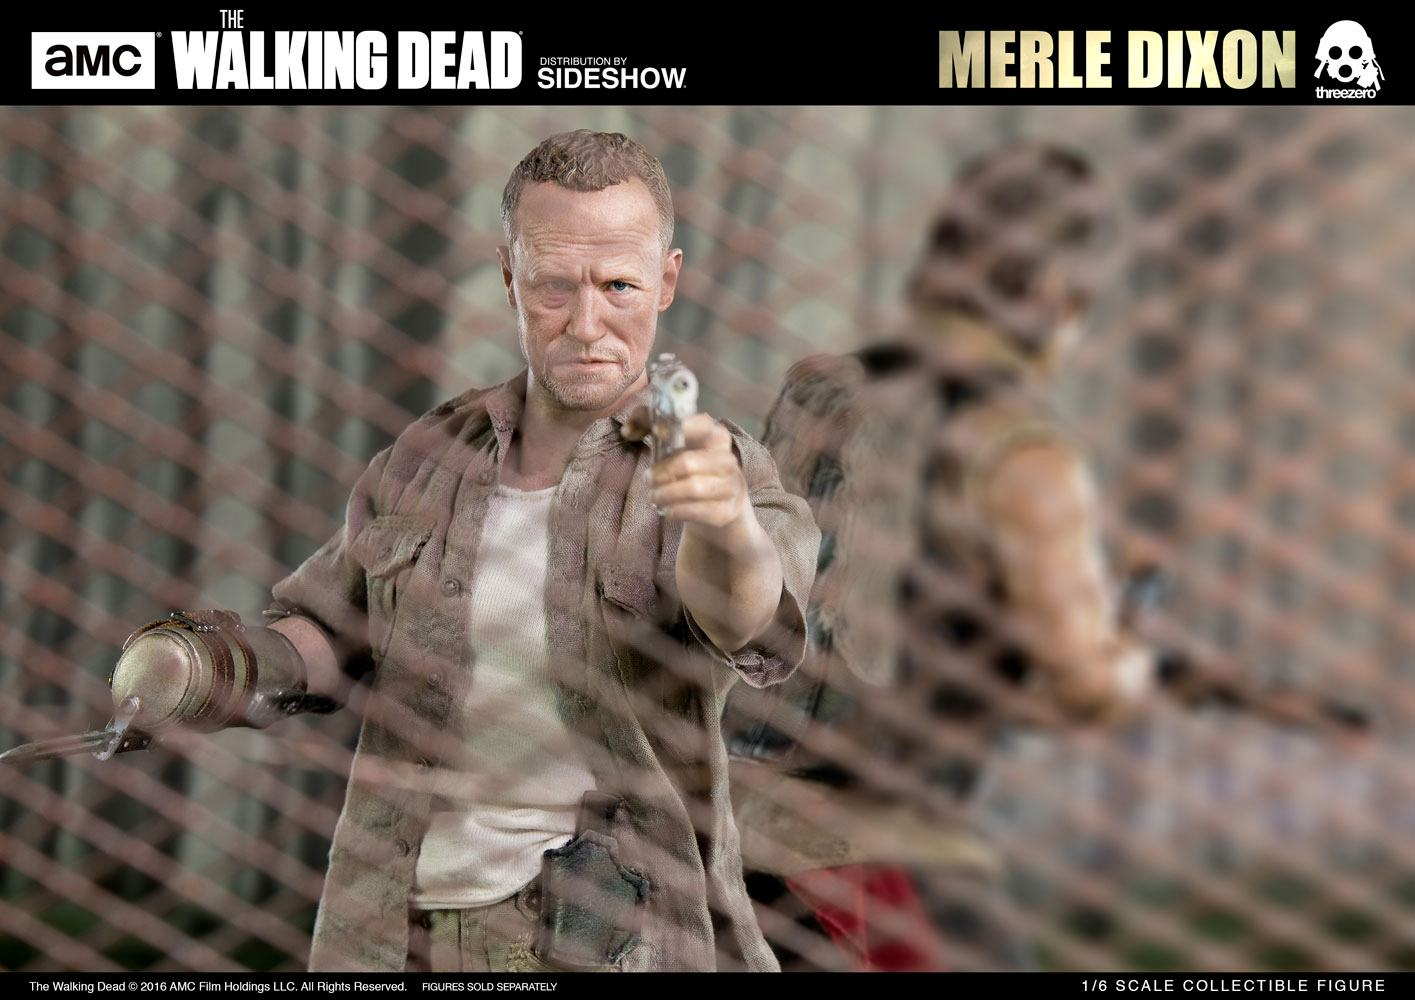 action-figure-merle-dixon-walking-dead-threezero-10